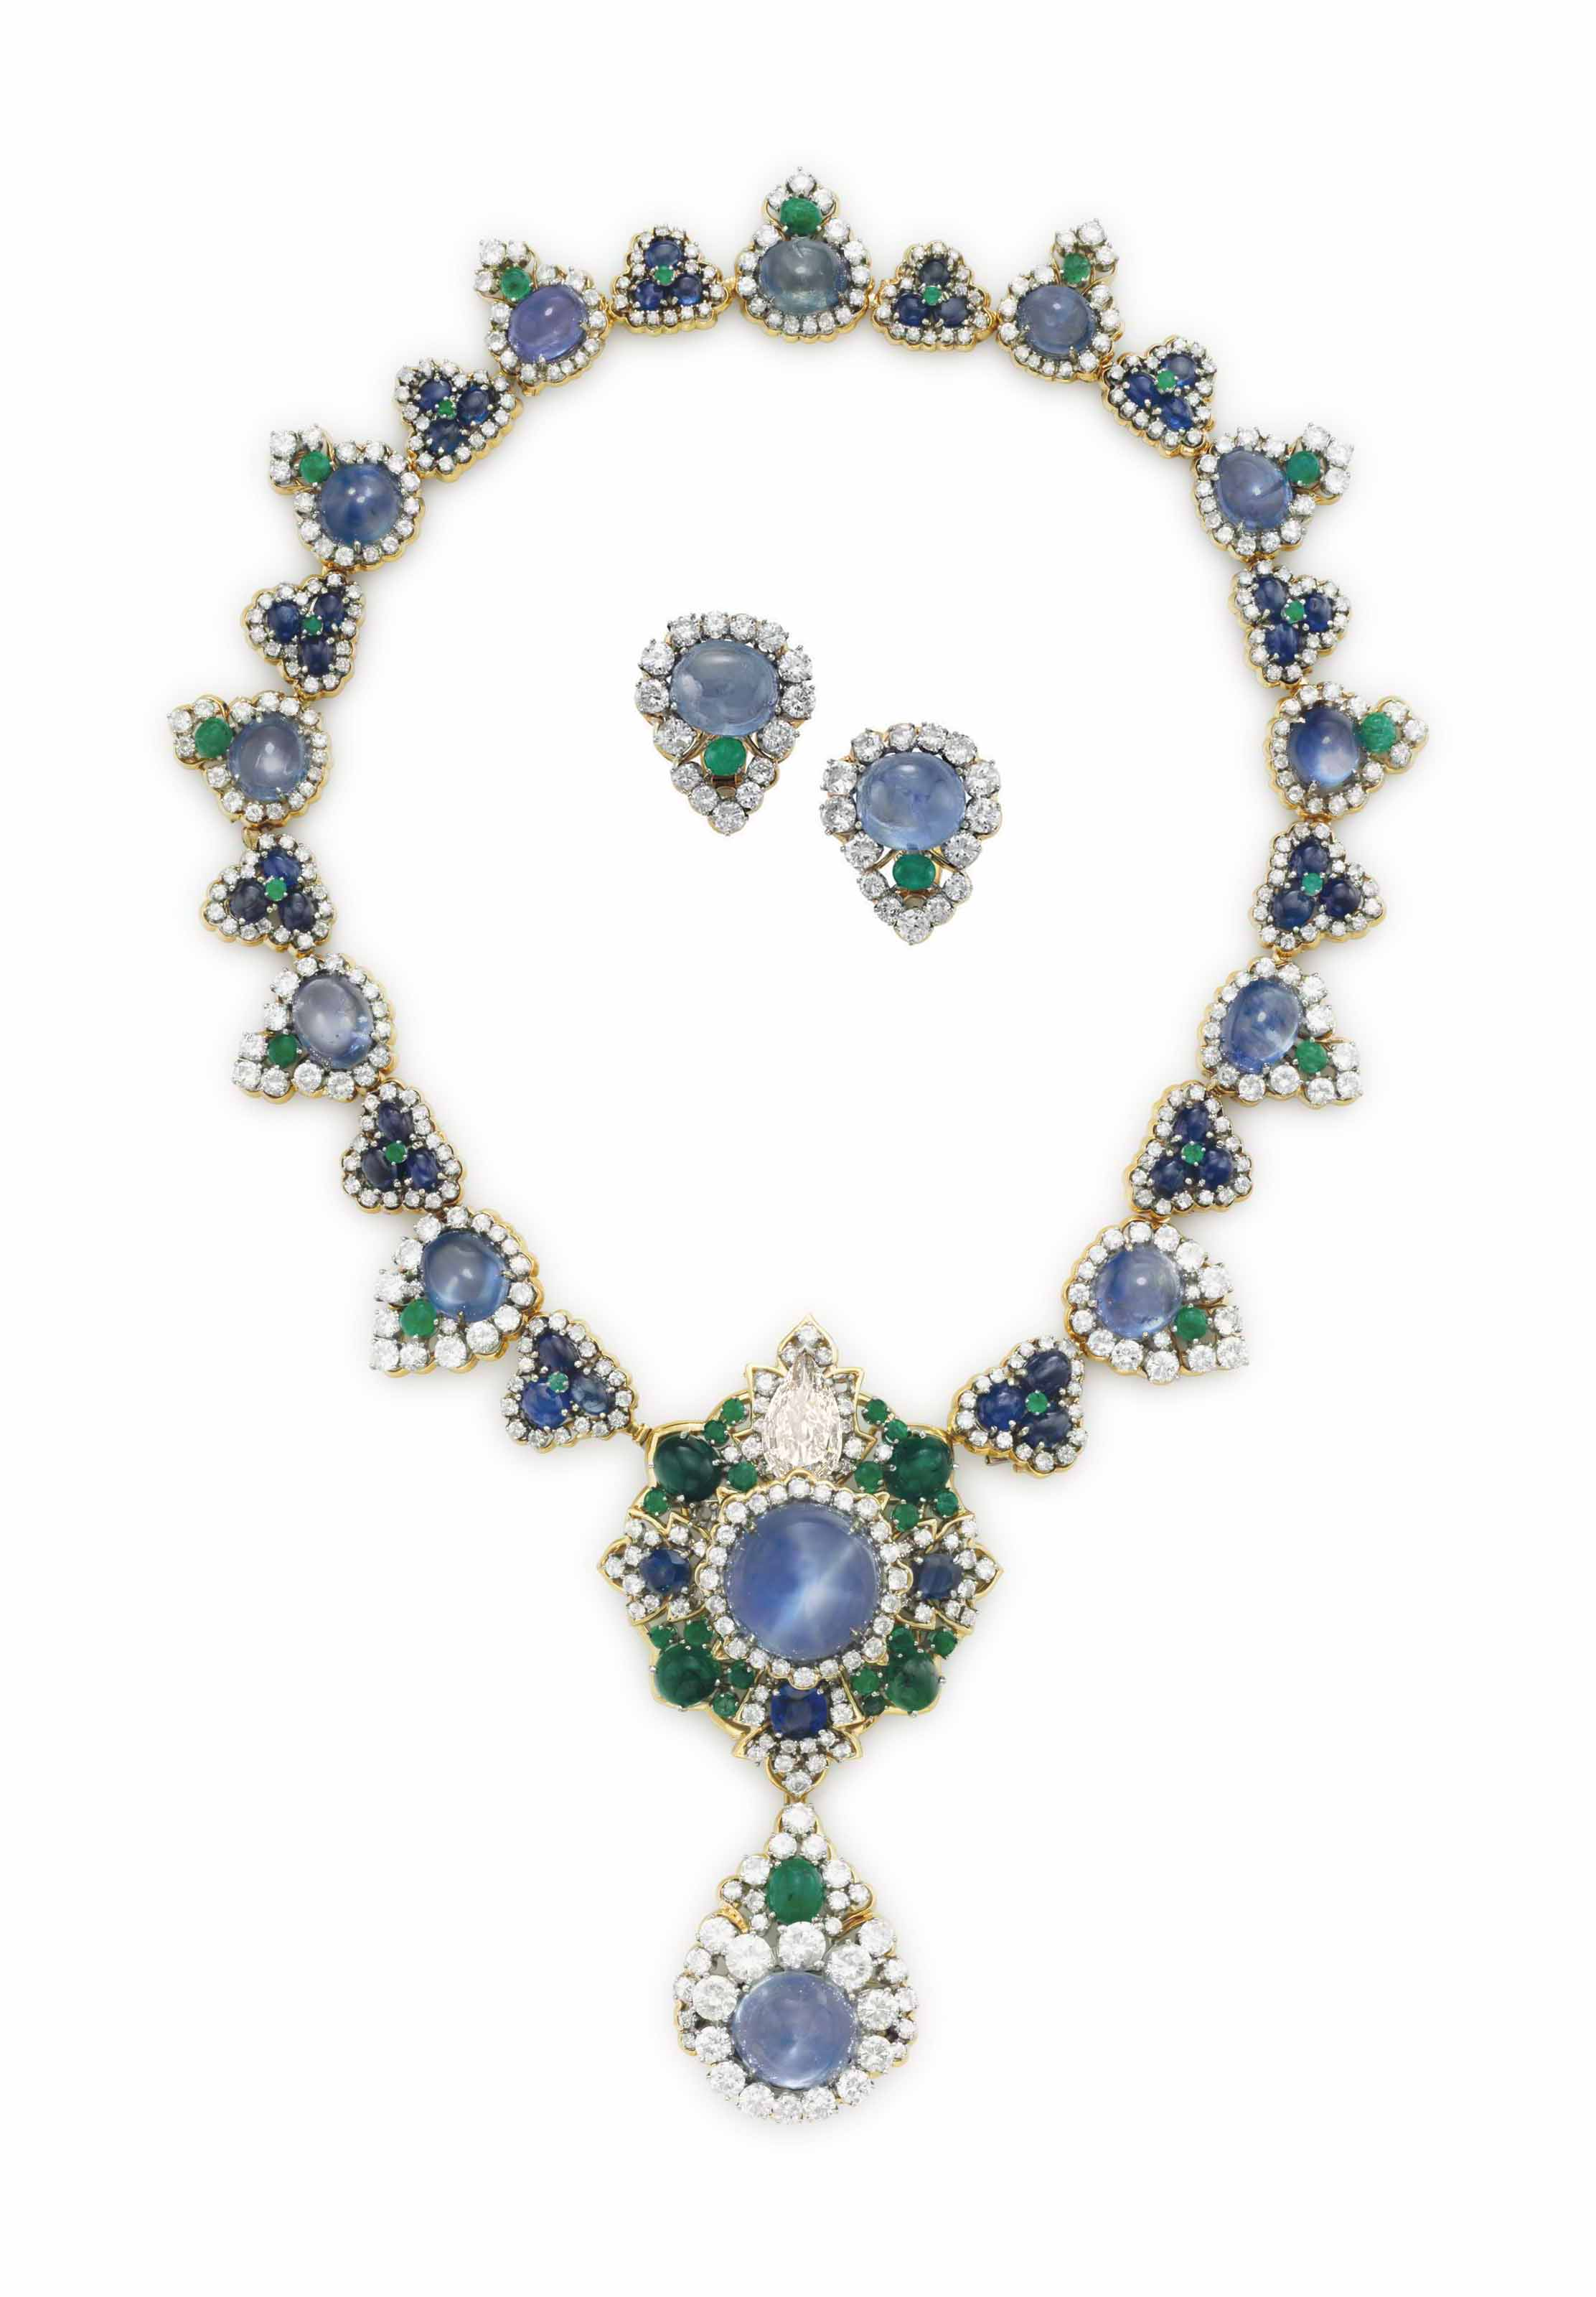 A SET OF SAPPHIRE, EMERALD AND DIAMOND JEWELRY, BY DAVID WEBB